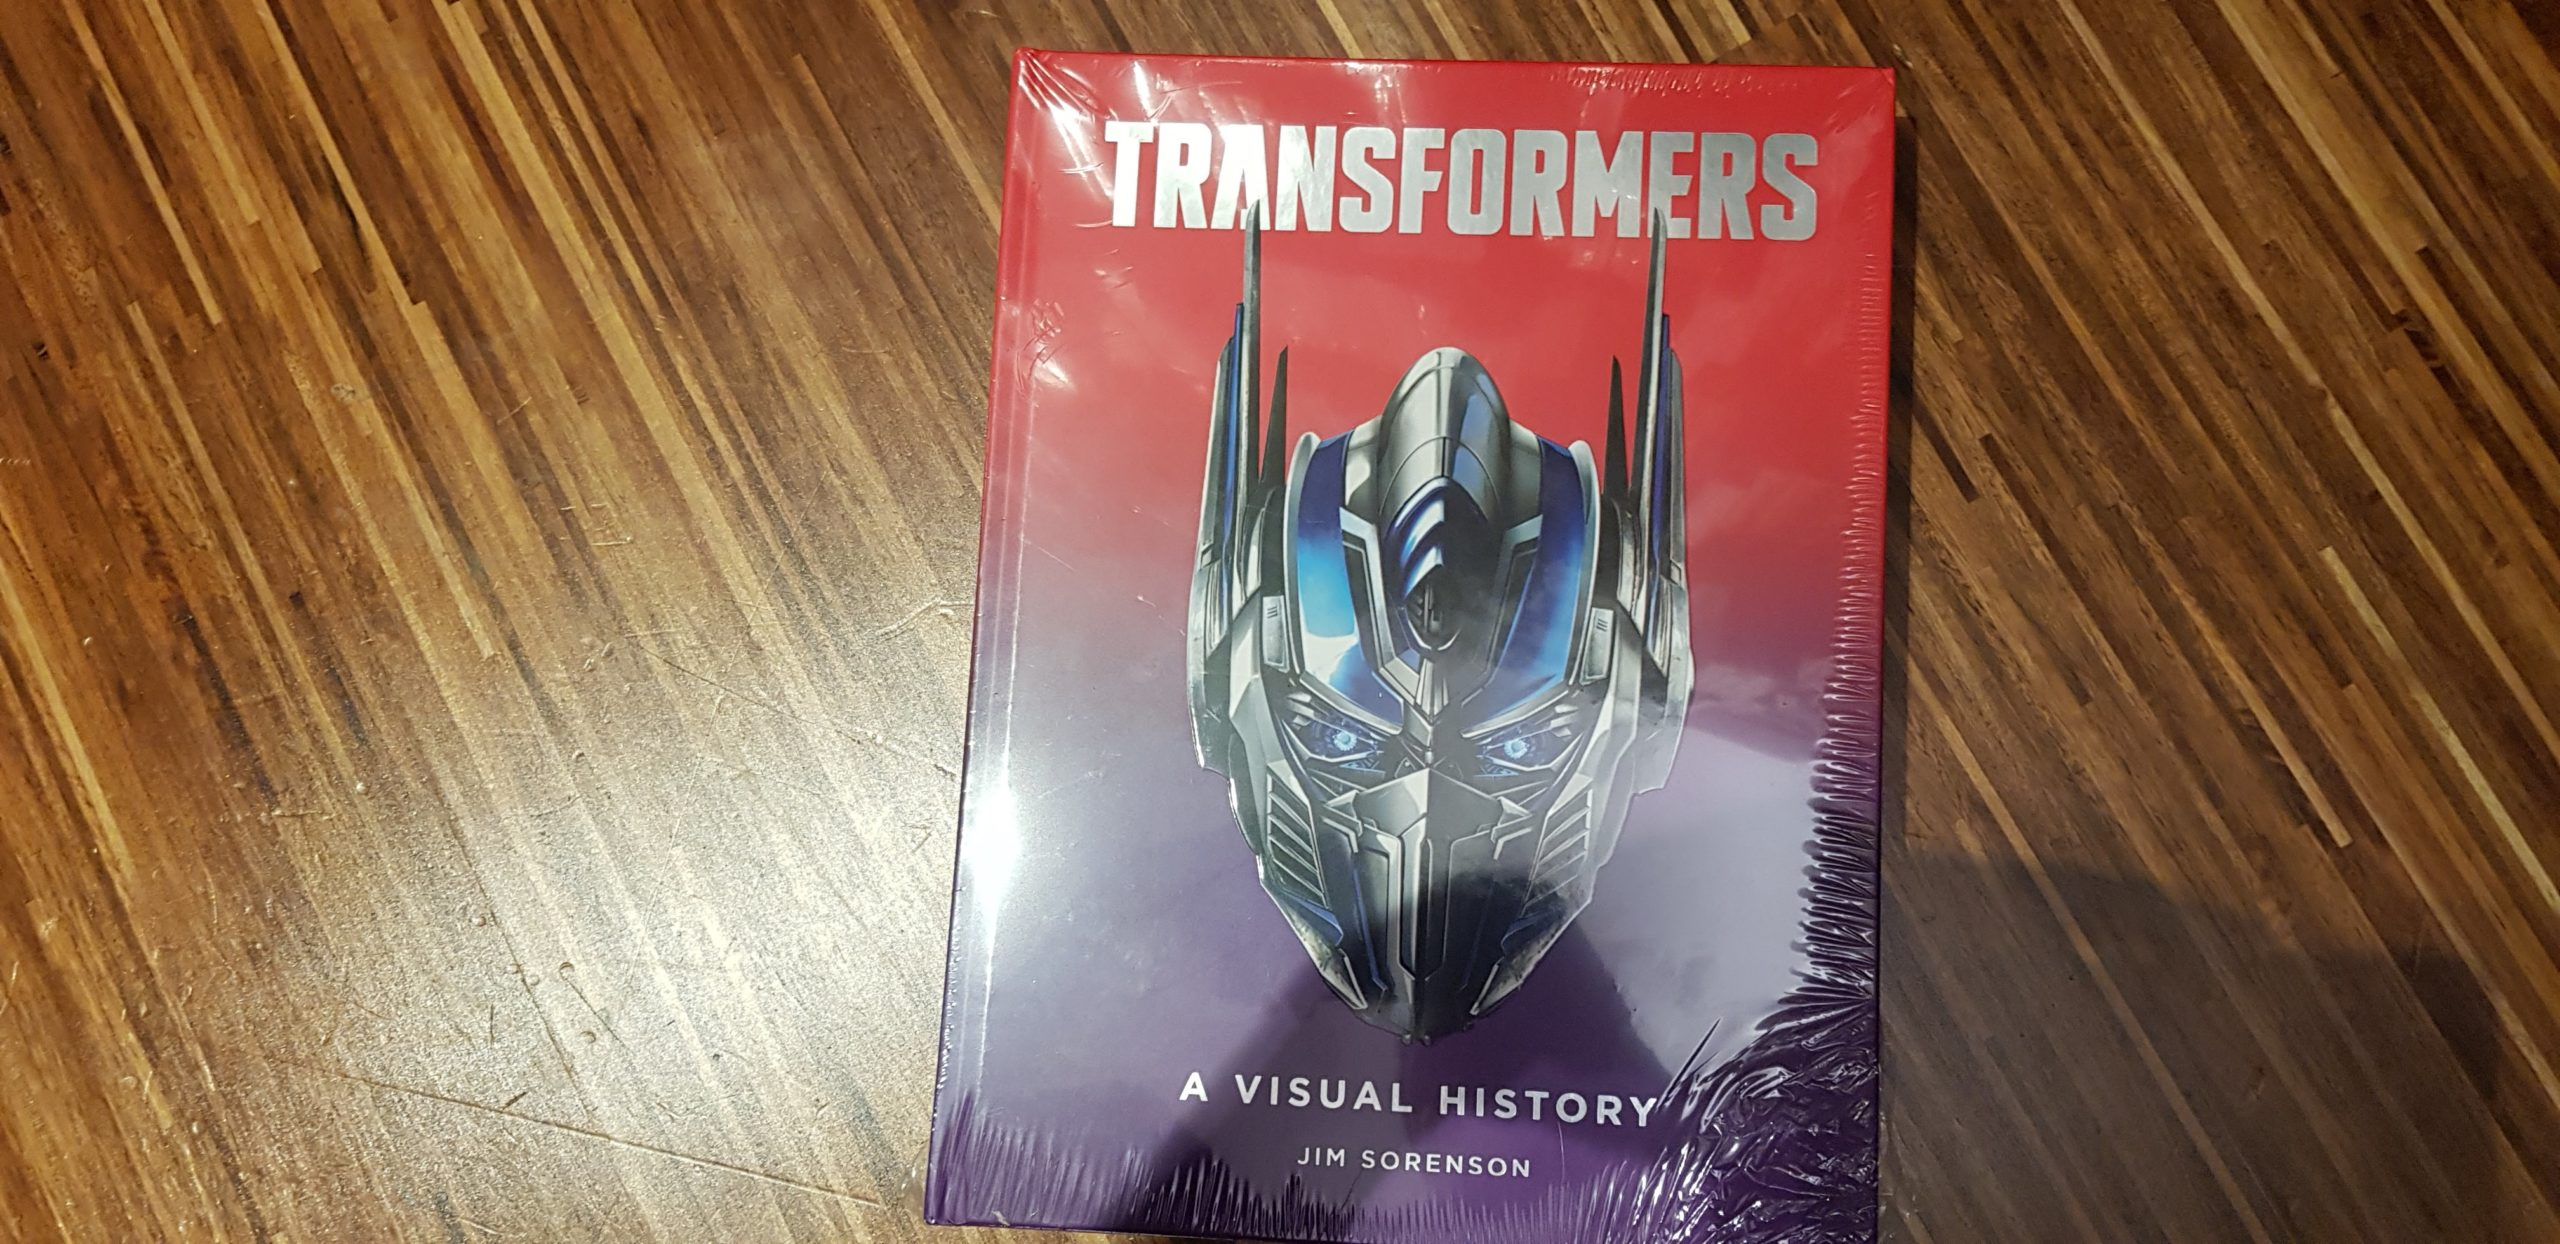 A visual history Transformers book inspiration for industrial product design sketching